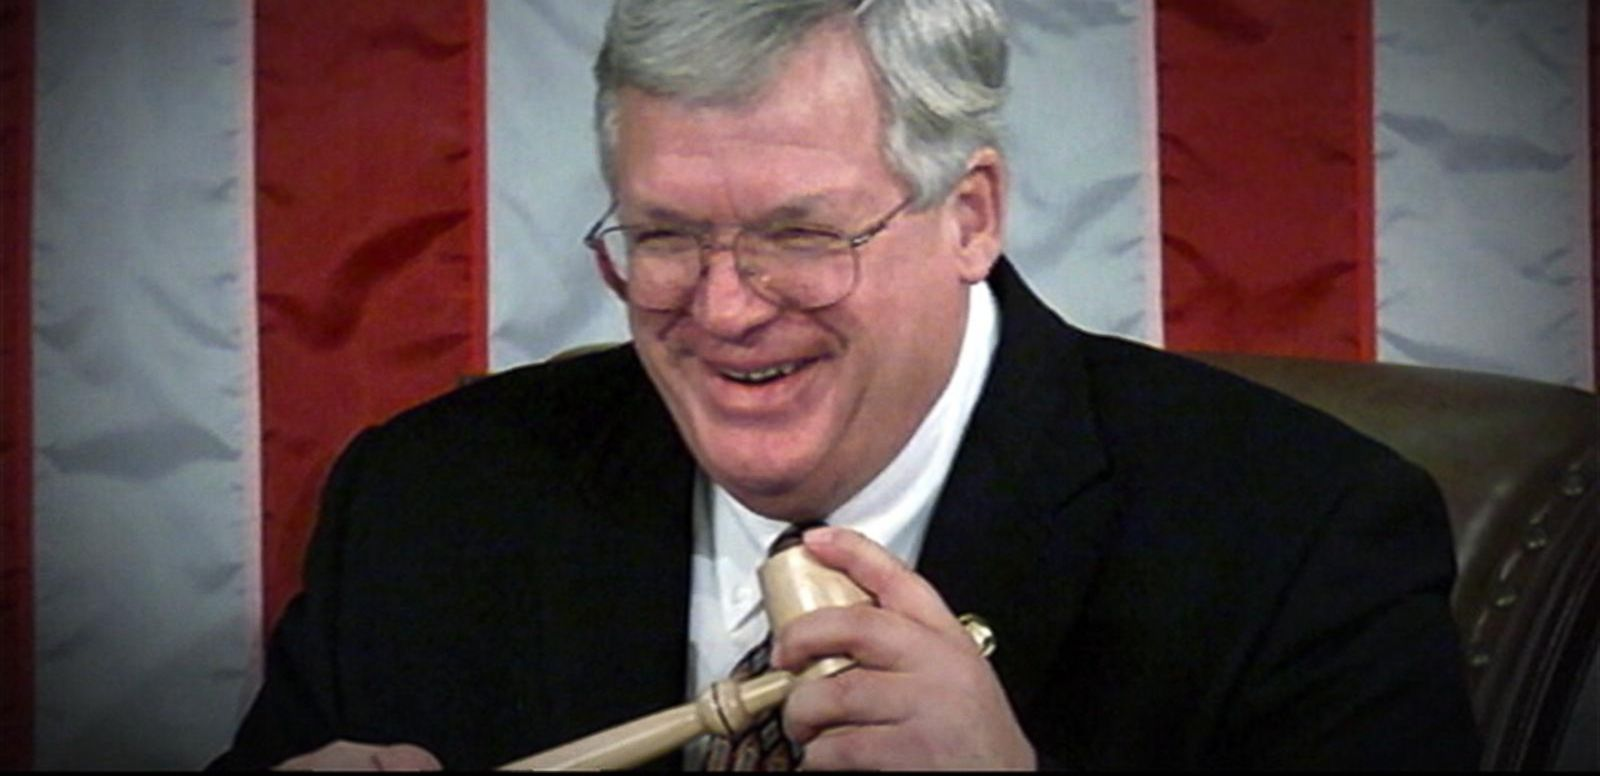 VIDEO: Washington Powerhouse Dennis Hastert Indicted